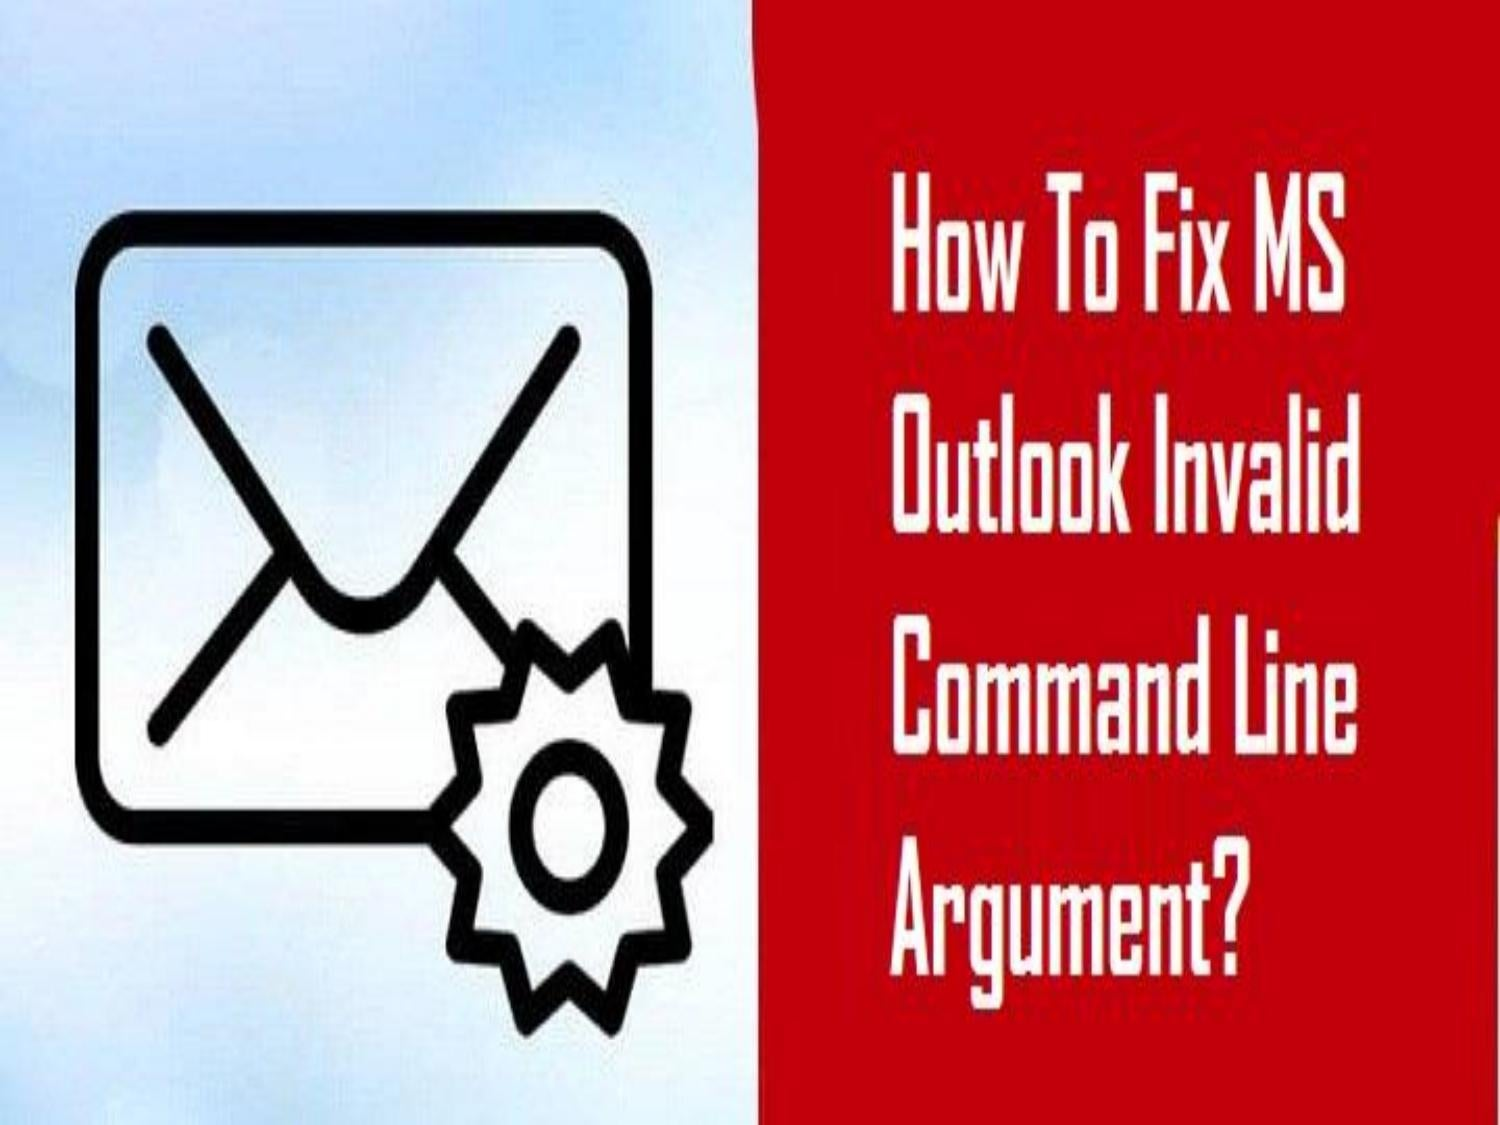 1-800-213-3740 Fix MS Outlook Invalid Command Line Argument by Gmail